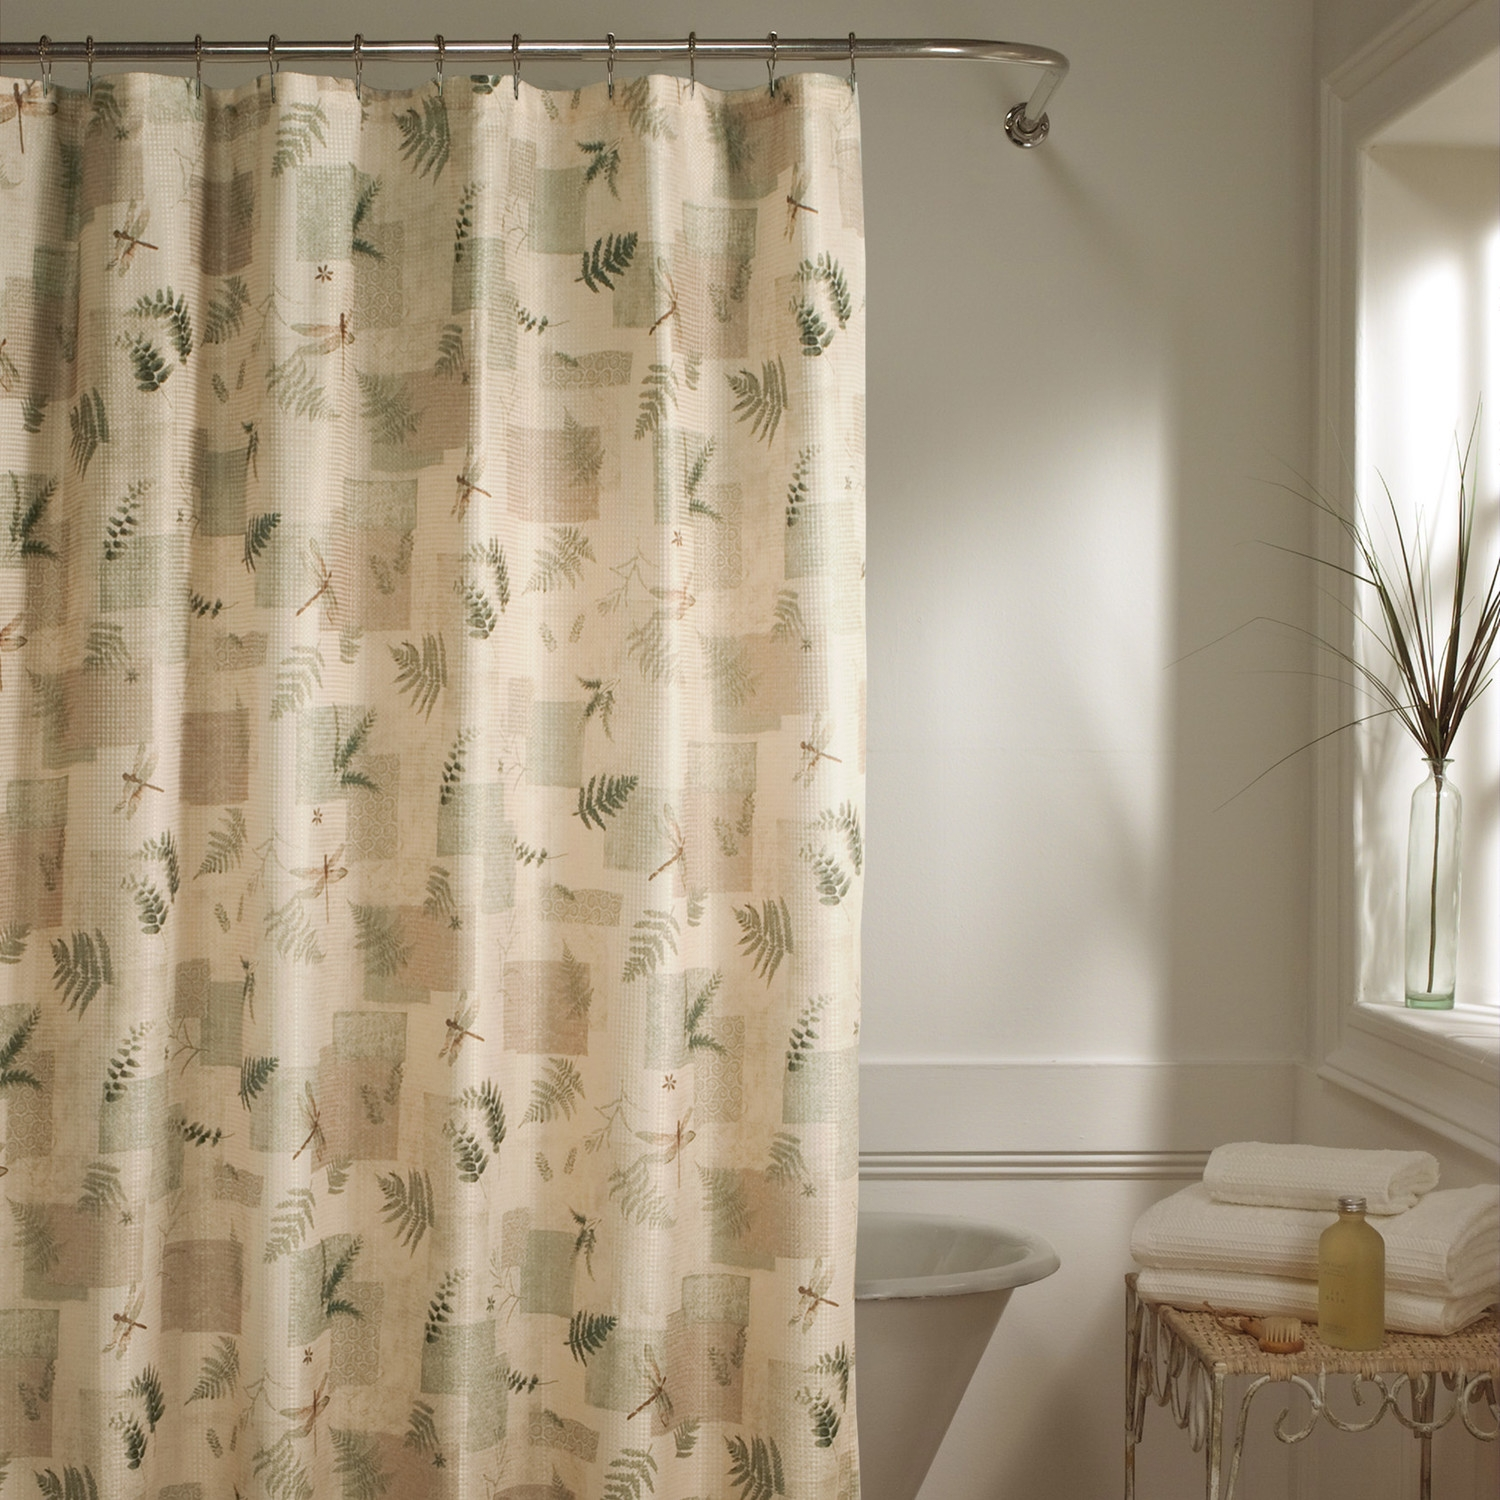 Maytex Julia Natural Fabric Shower Curtain For Natural Fabric Curtain (Image 9 of 15)